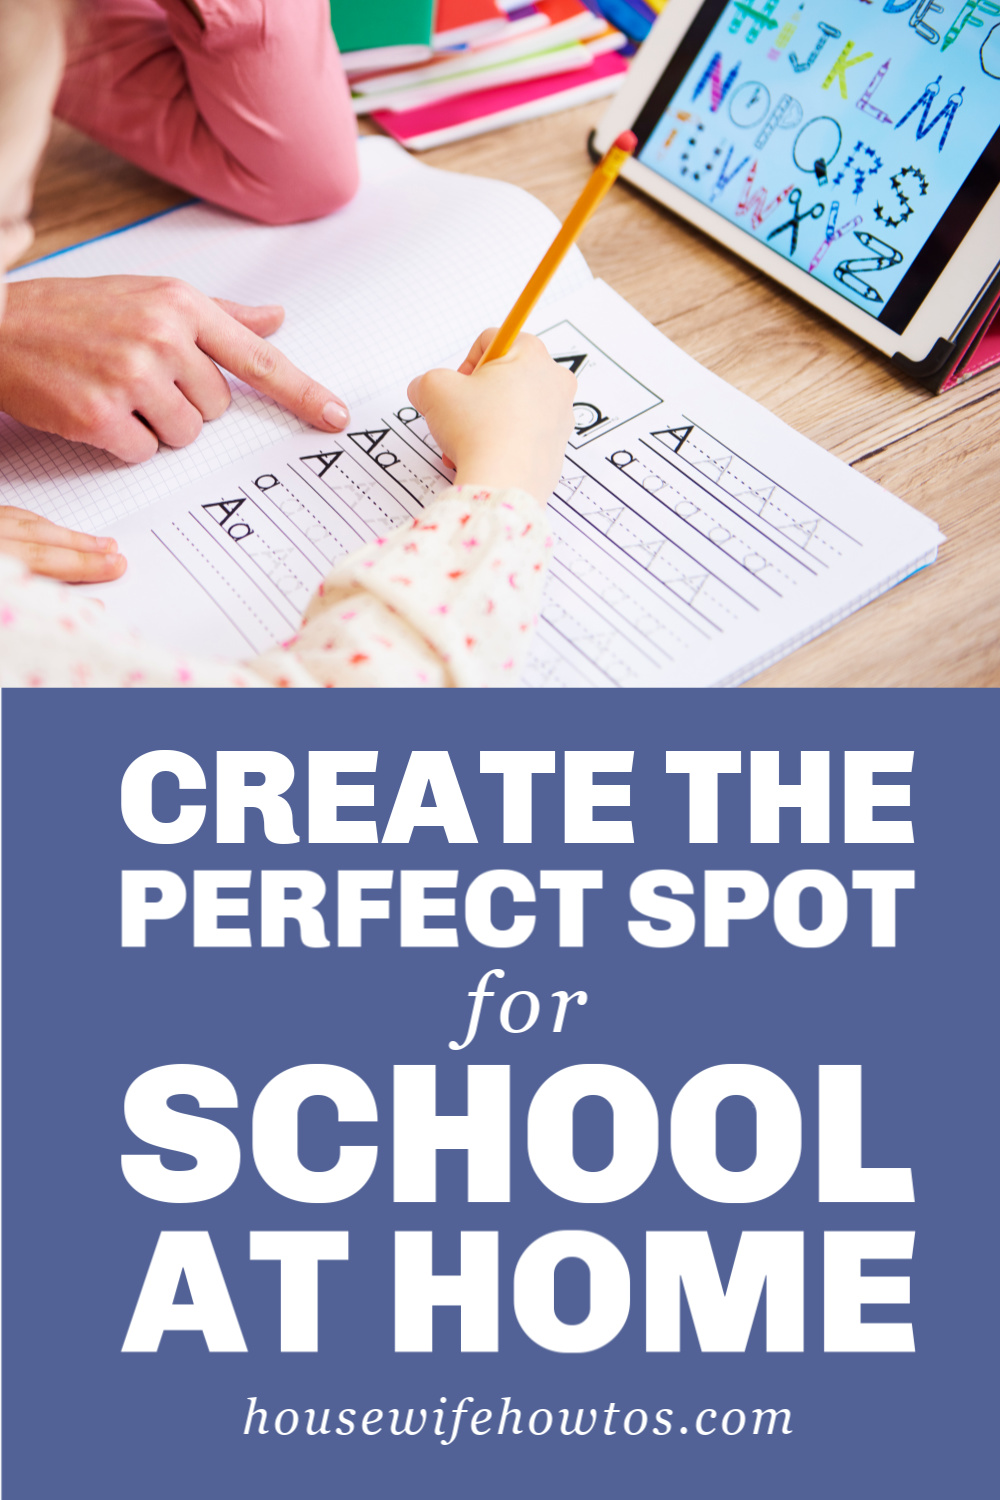 How to Organize a Study Space They'll Actually Use | Don't waste money on special systems or space on dedicated rooms. These tips will create a study environment your kids will do well in while letting you supervise without worry. #studytime #studying #homework #homeworkorganization #schooldays #homeworkhelp #homeorganization #backtoschool #housewifehowtos